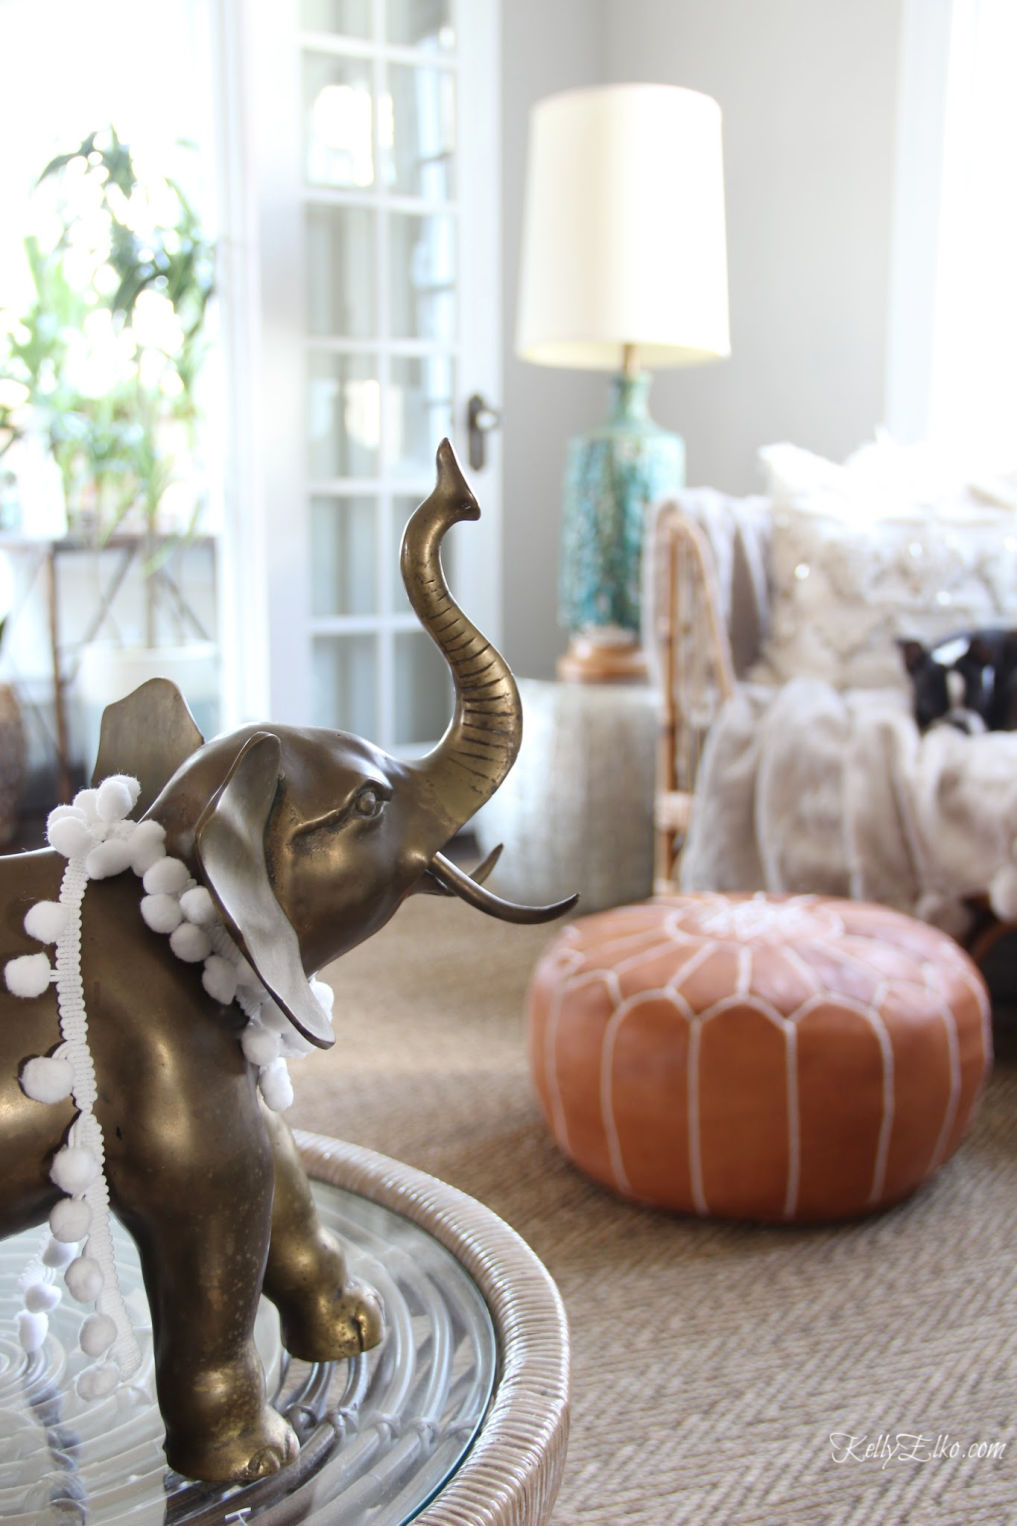 Vintage brass elephant in an eclectic living room kellyelko.com #vintagedecor #thriftedecor #vintagebrass #elephant